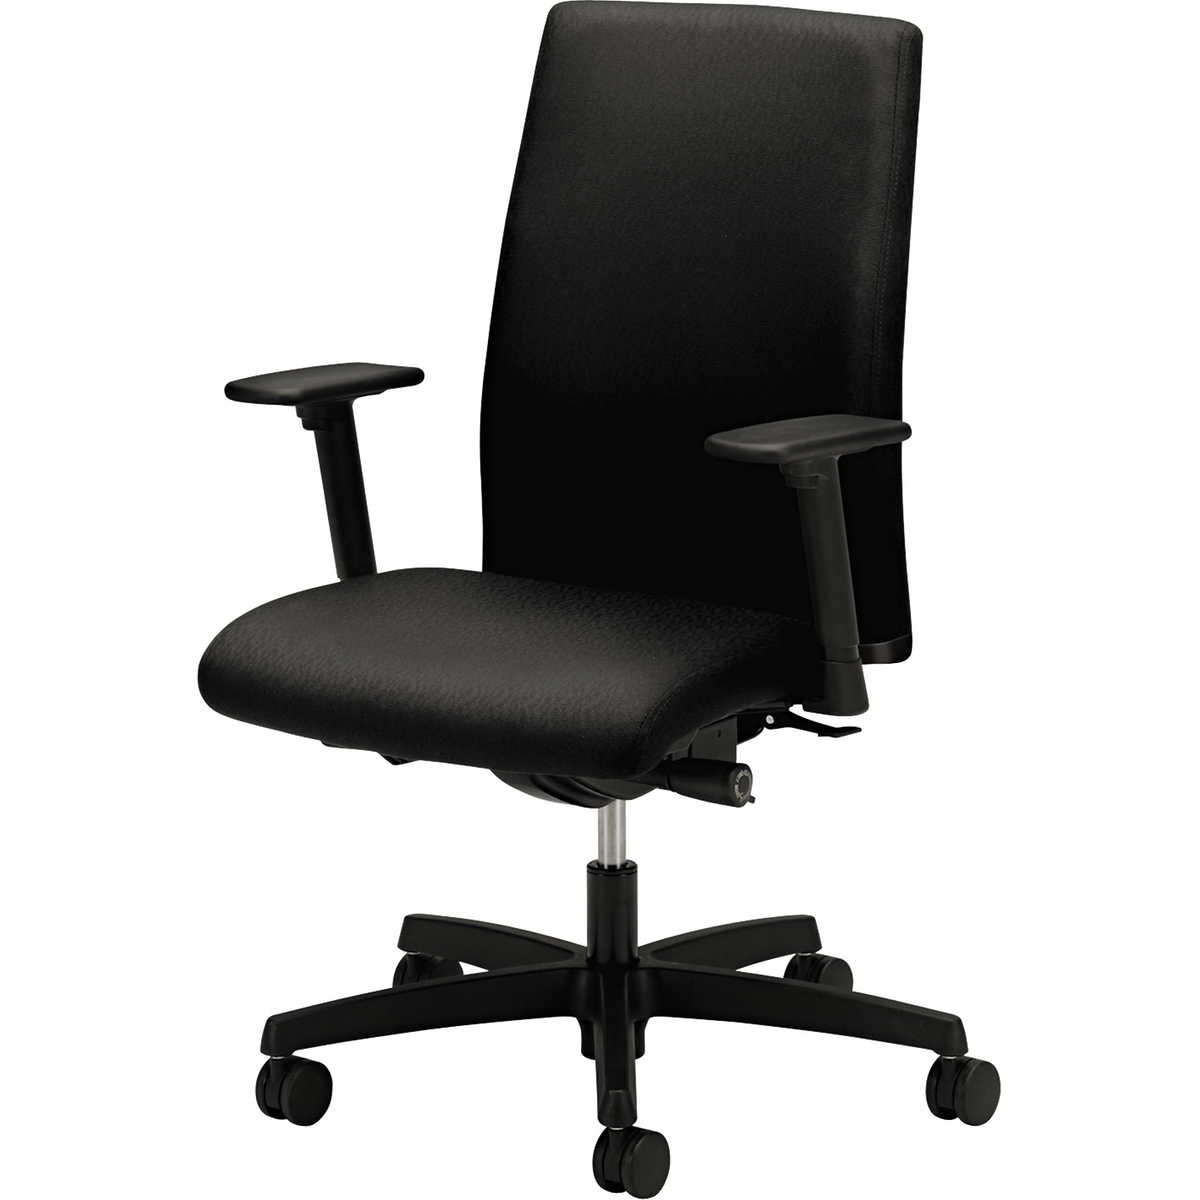 HON Ignition Series Black MidBack Work Chair - Work chair